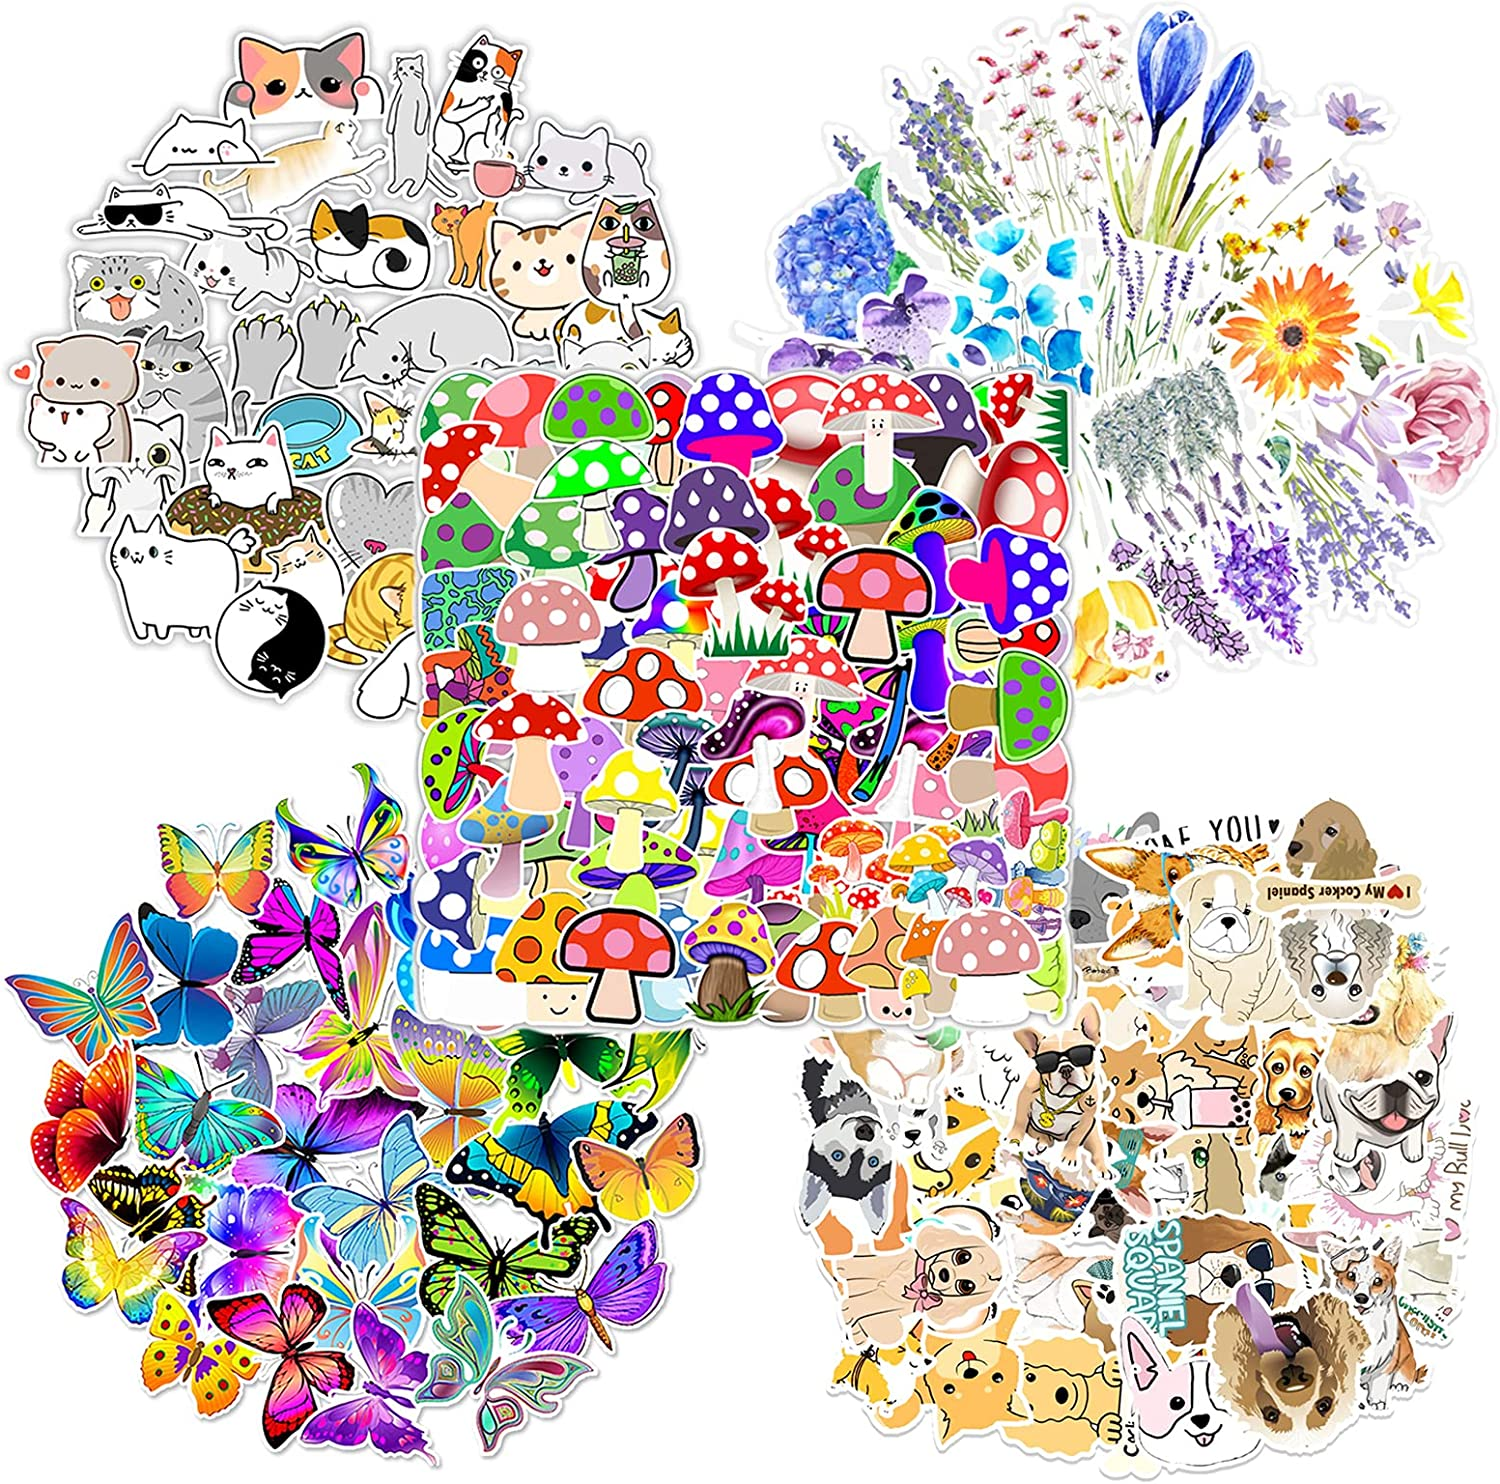 250 Pieces Mixed Sticker for Water Bottles, VSCO Waterproof Aesthetic Trendy Vinyl Decal, Cute Cat Dog Mushroom Flower Butterfly GraffitiStickers for Kids Computer Laptops Phones Luggage Skateboard